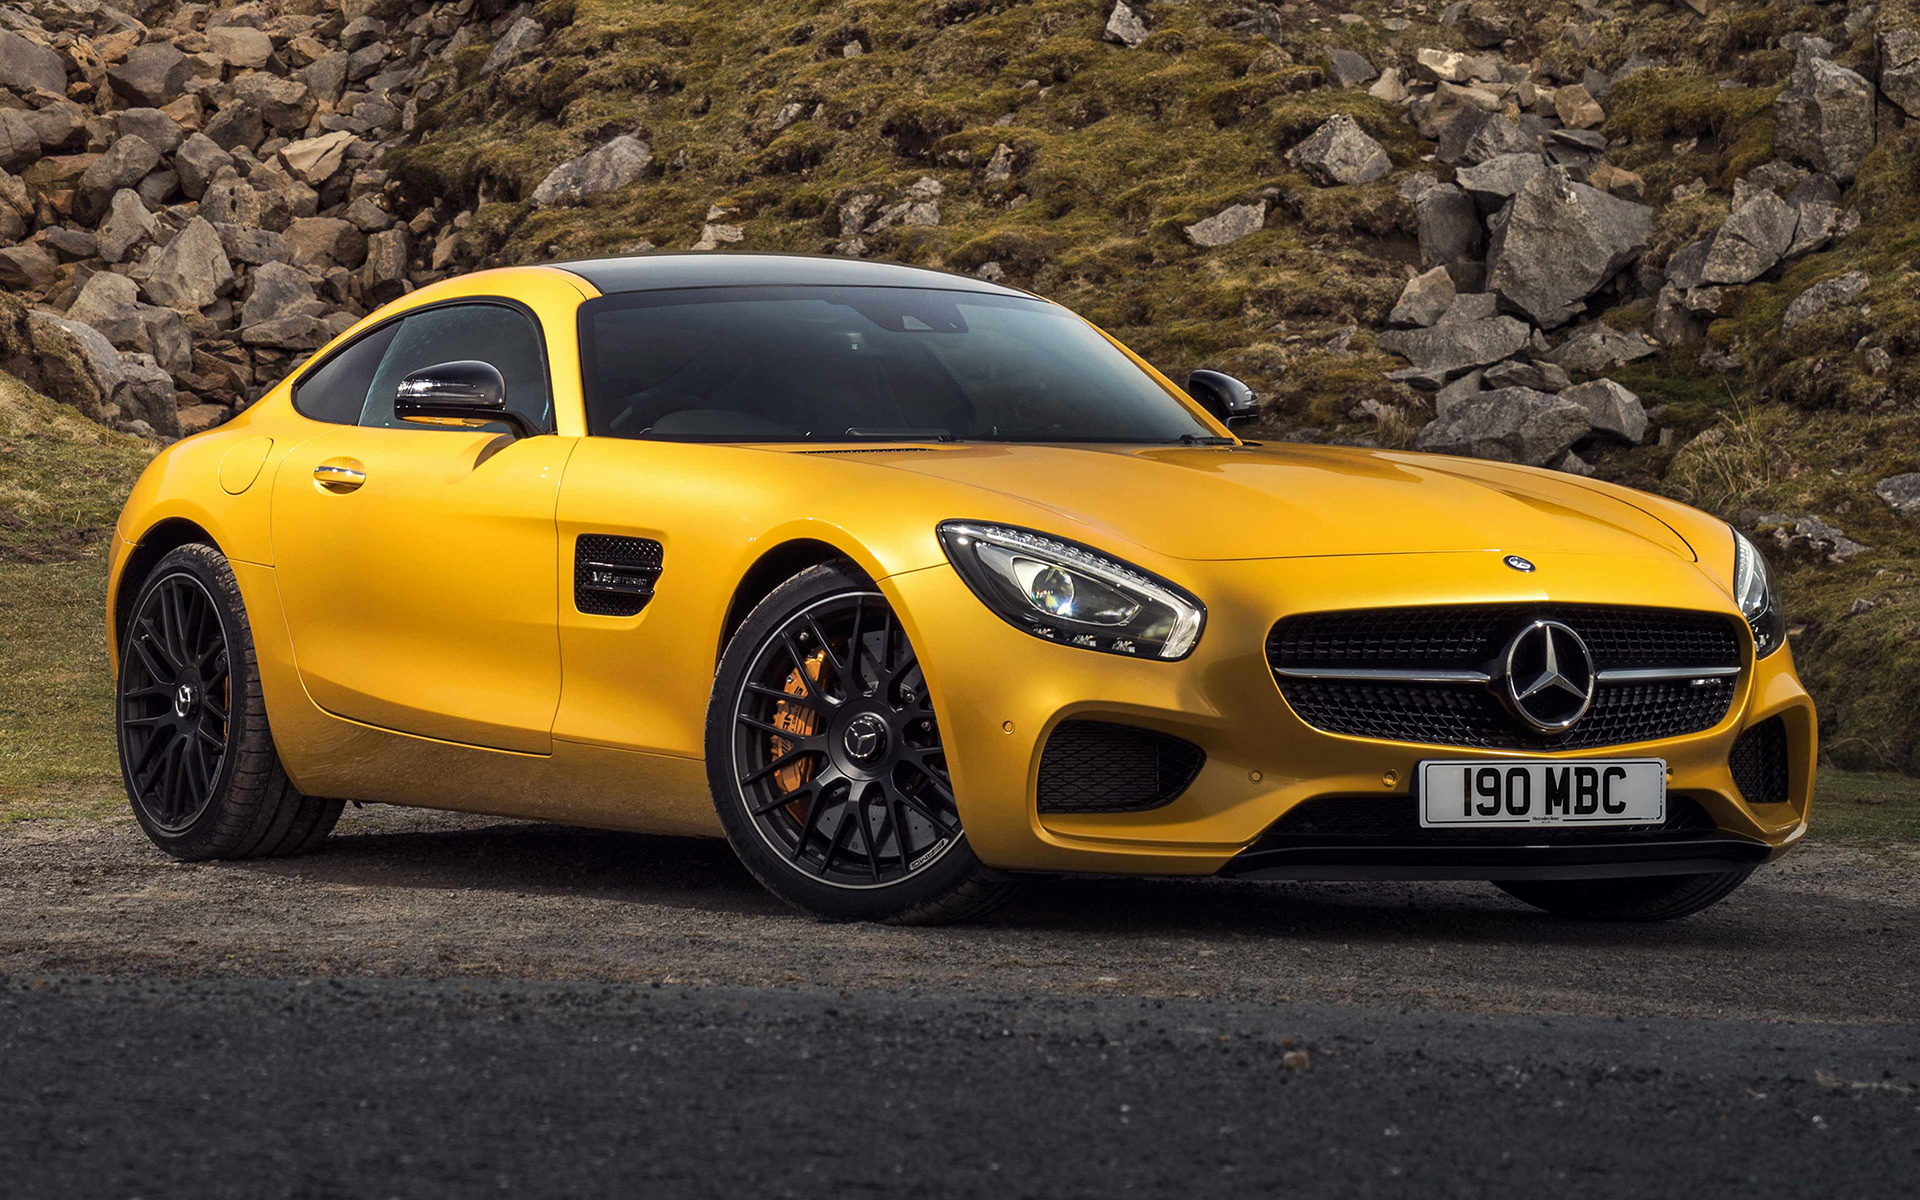 mercedes amg gt s 2015 uk wallpapers and hd images car. Black Bedroom Furniture Sets. Home Design Ideas